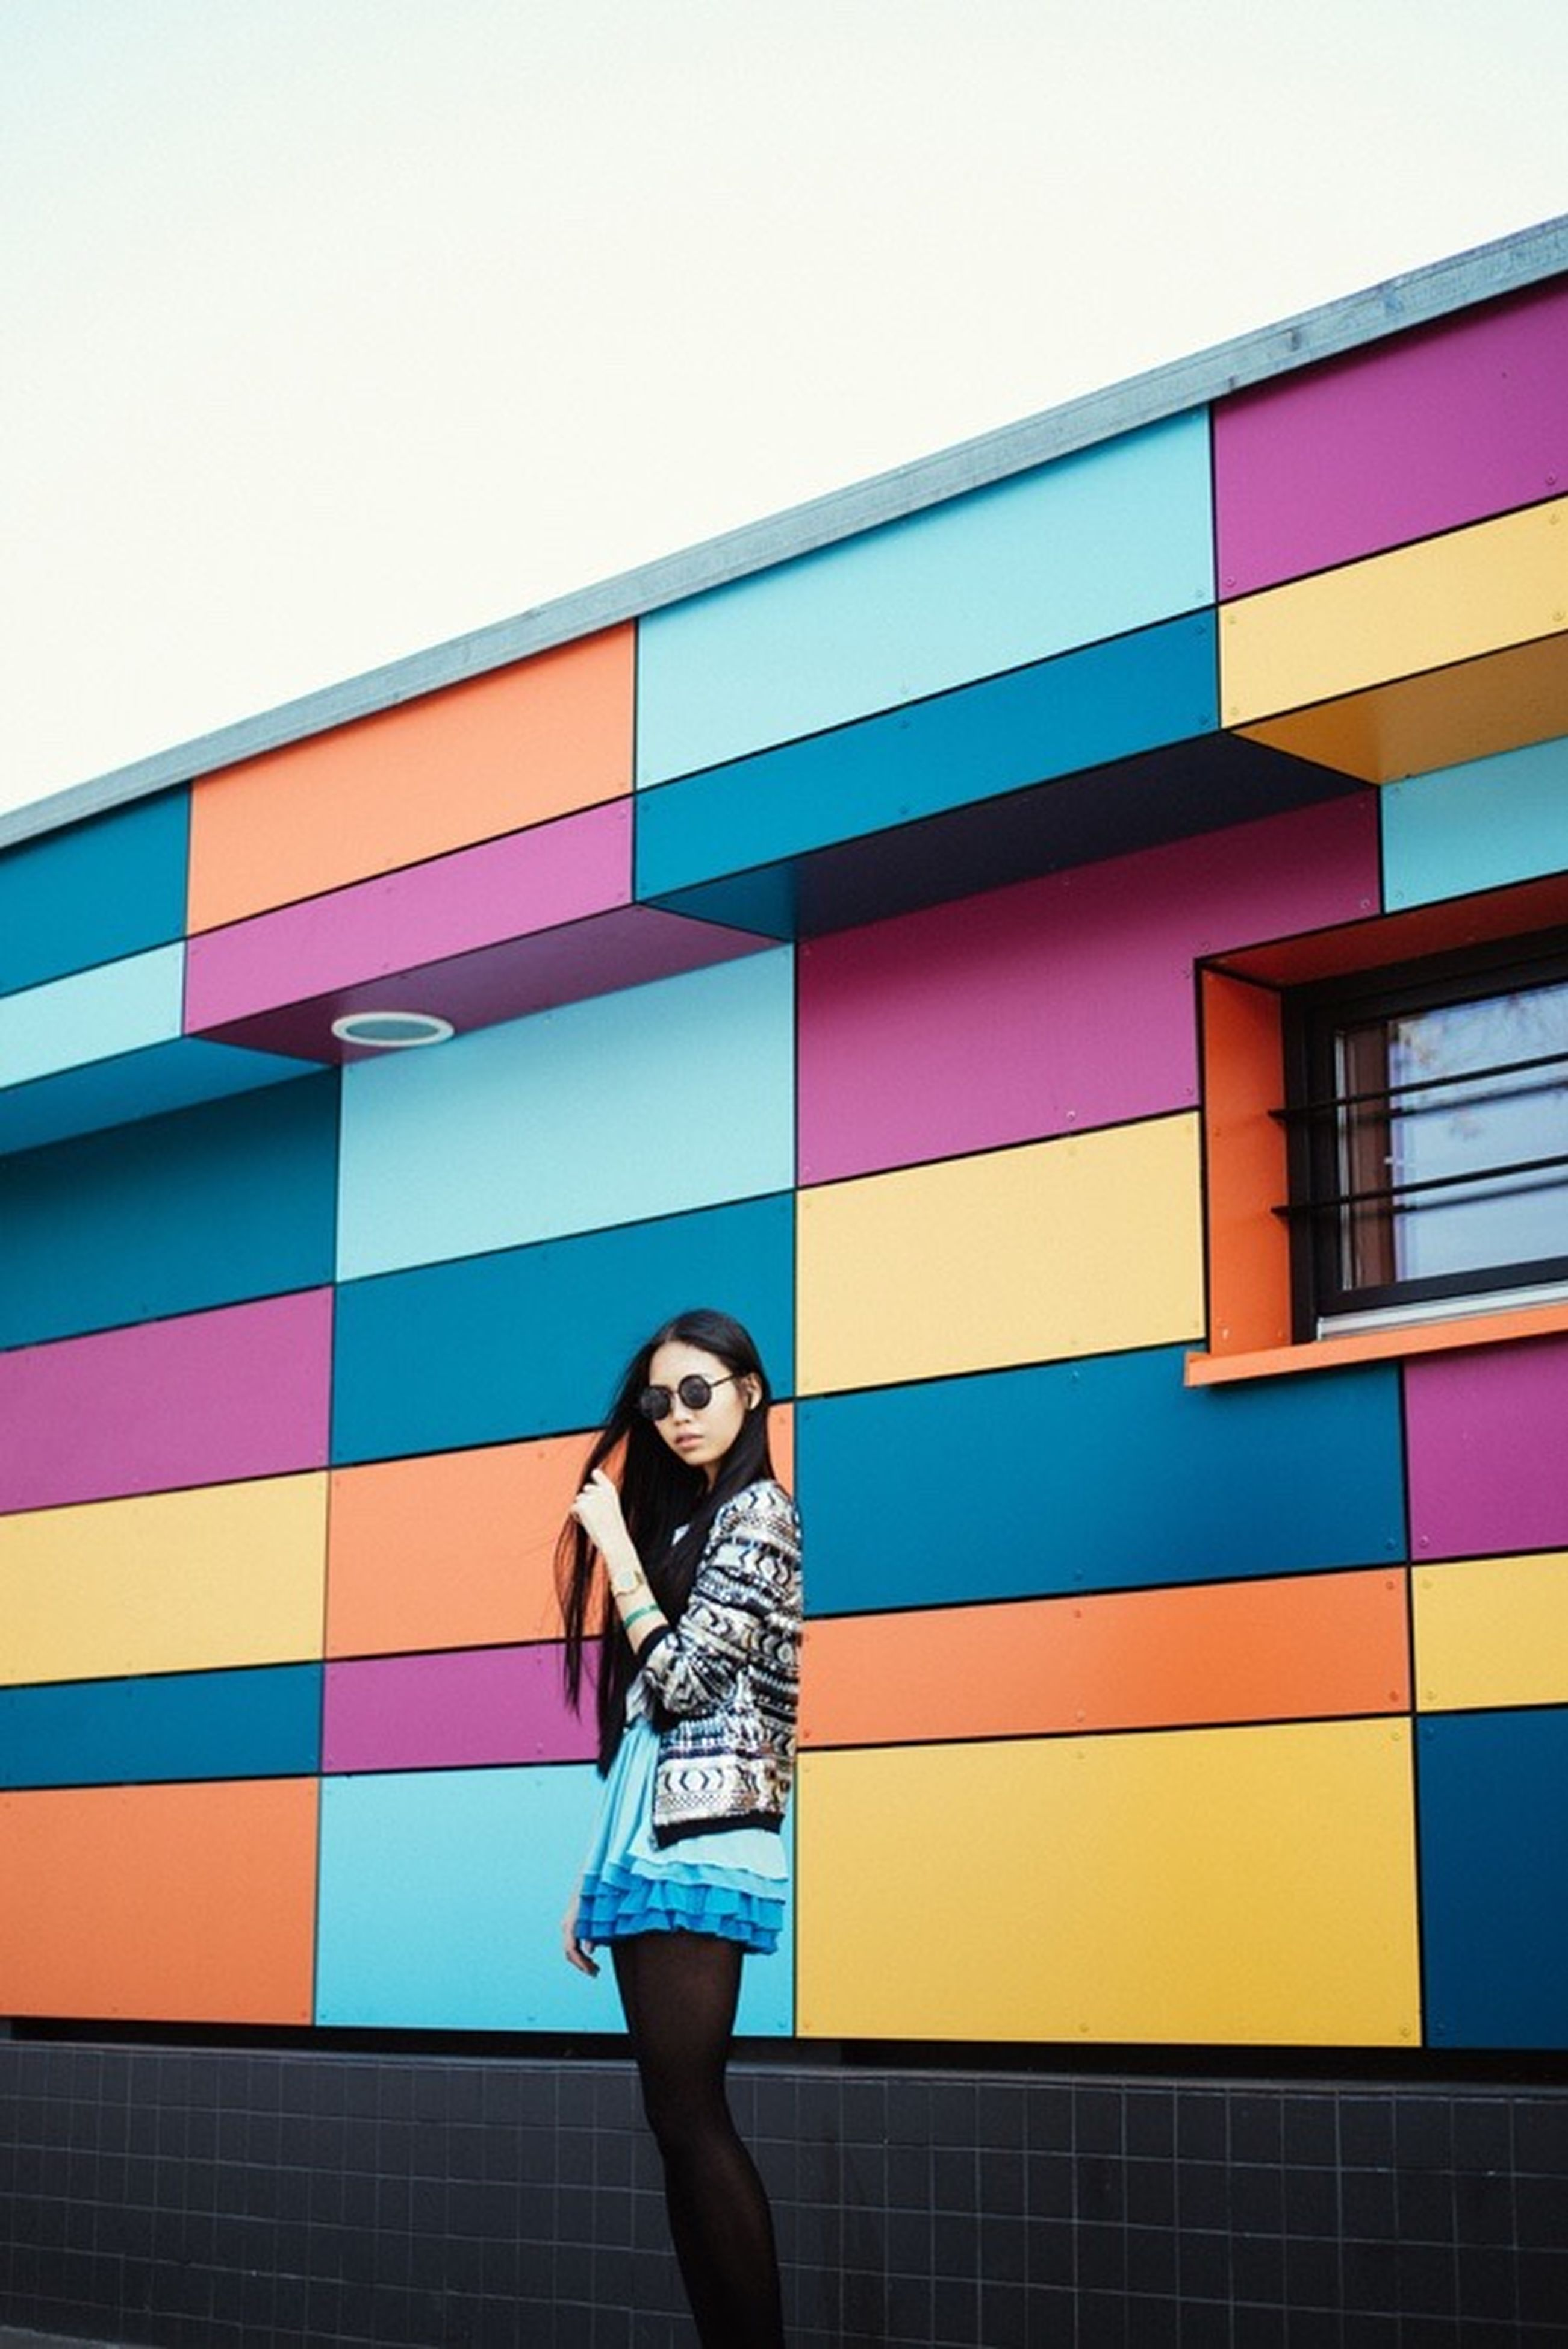 building exterior, architecture, built structure, lifestyles, casual clothing, standing, three quarter length, young adult, leisure activity, low angle view, person, front view, clear sky, building, multi colored, city, waist up, blue